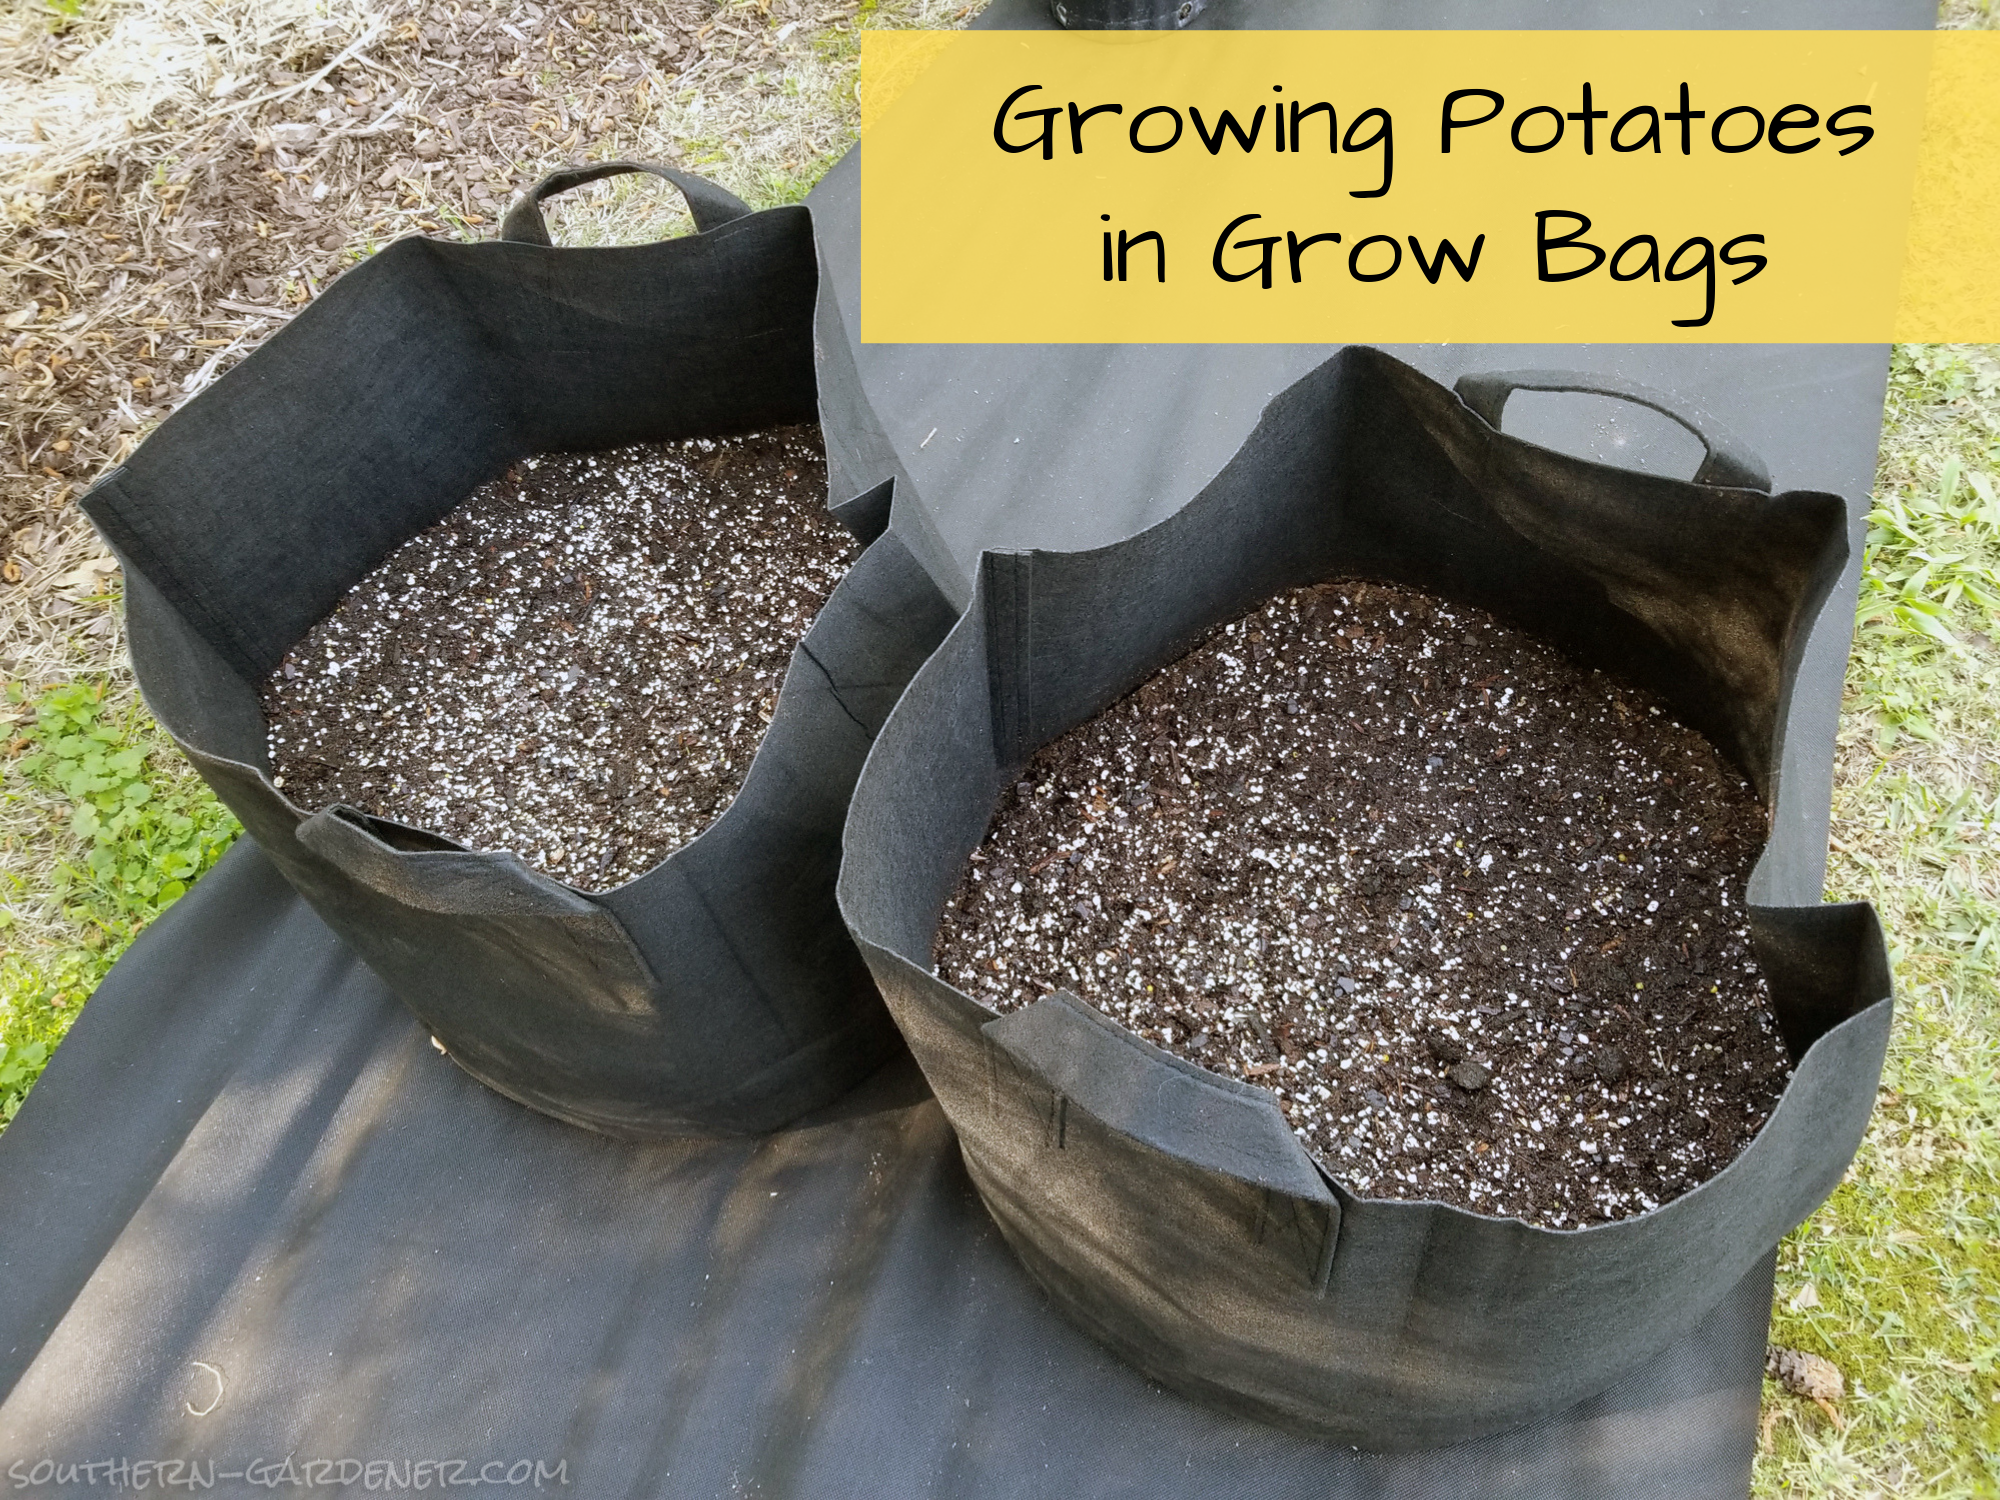 Growing Potatoes in Grow Bags